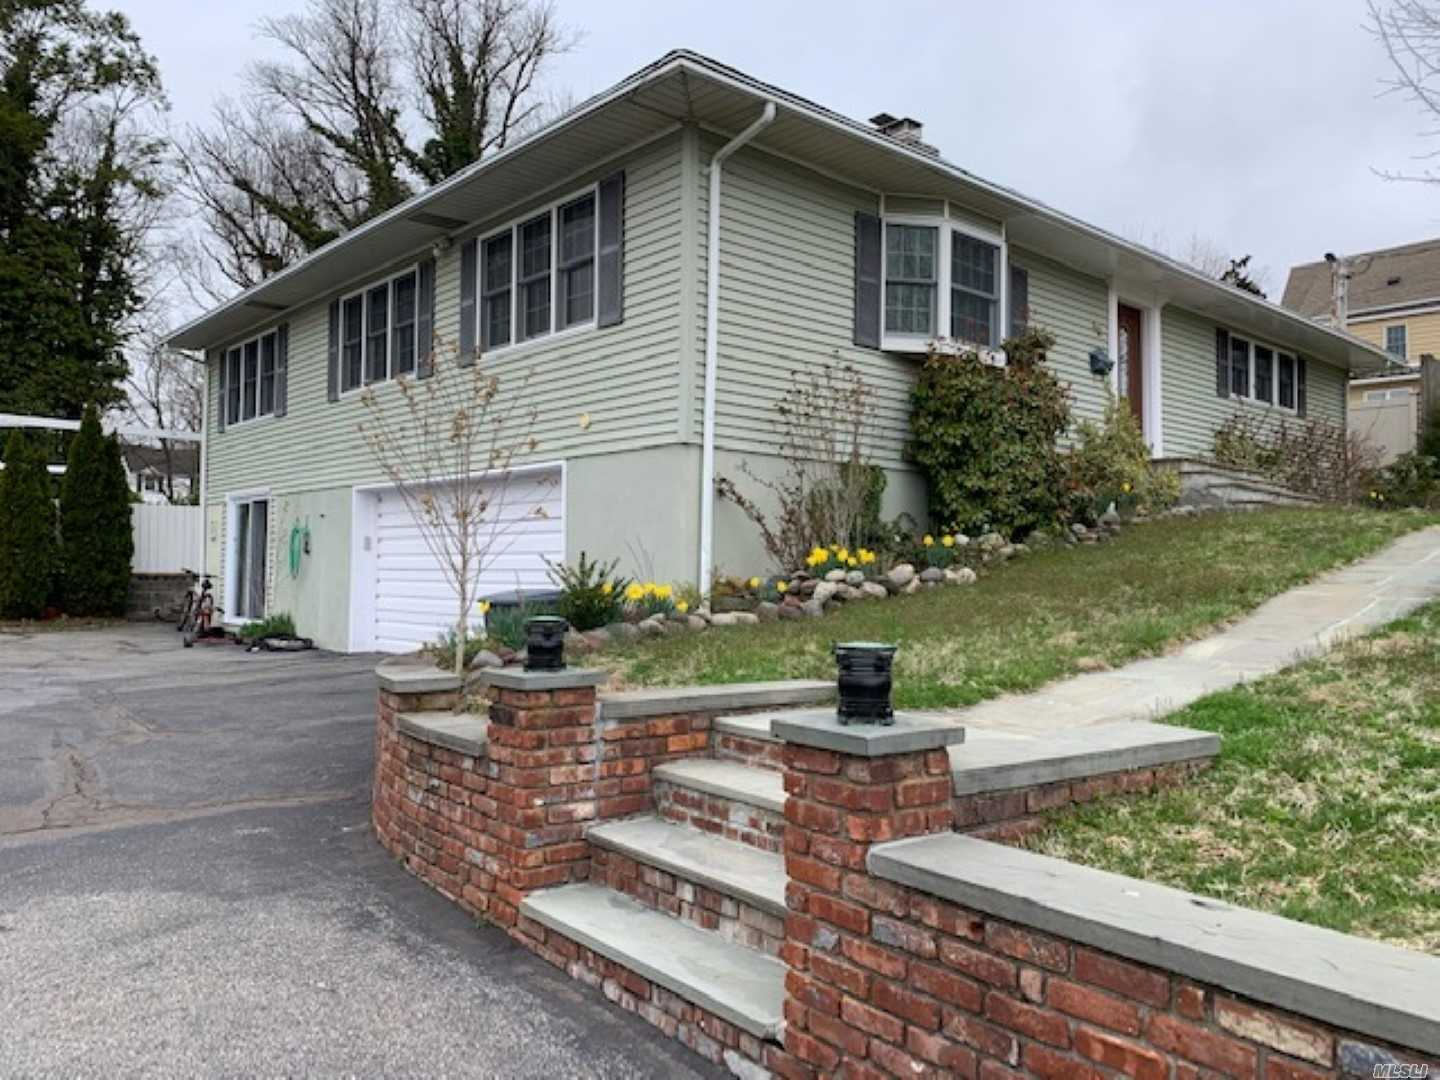 Bi-Level Ranch near Glen Head Primary+beach Open Concept Liv/Din, stone firepl, woodburn stove low heat bills NEW Eat-in KIT+banquette, gran/stain appl. All Wood Fl, Crown Mold. Master bath+steam show. Huge lowlevel multi-rm guest apt IDEAL MOTHER-DAUGHTER 40x20 Lap/Fun pool+huge entertain patio on secluded lot, mature trees, veggie garden Move-in-ready Gem